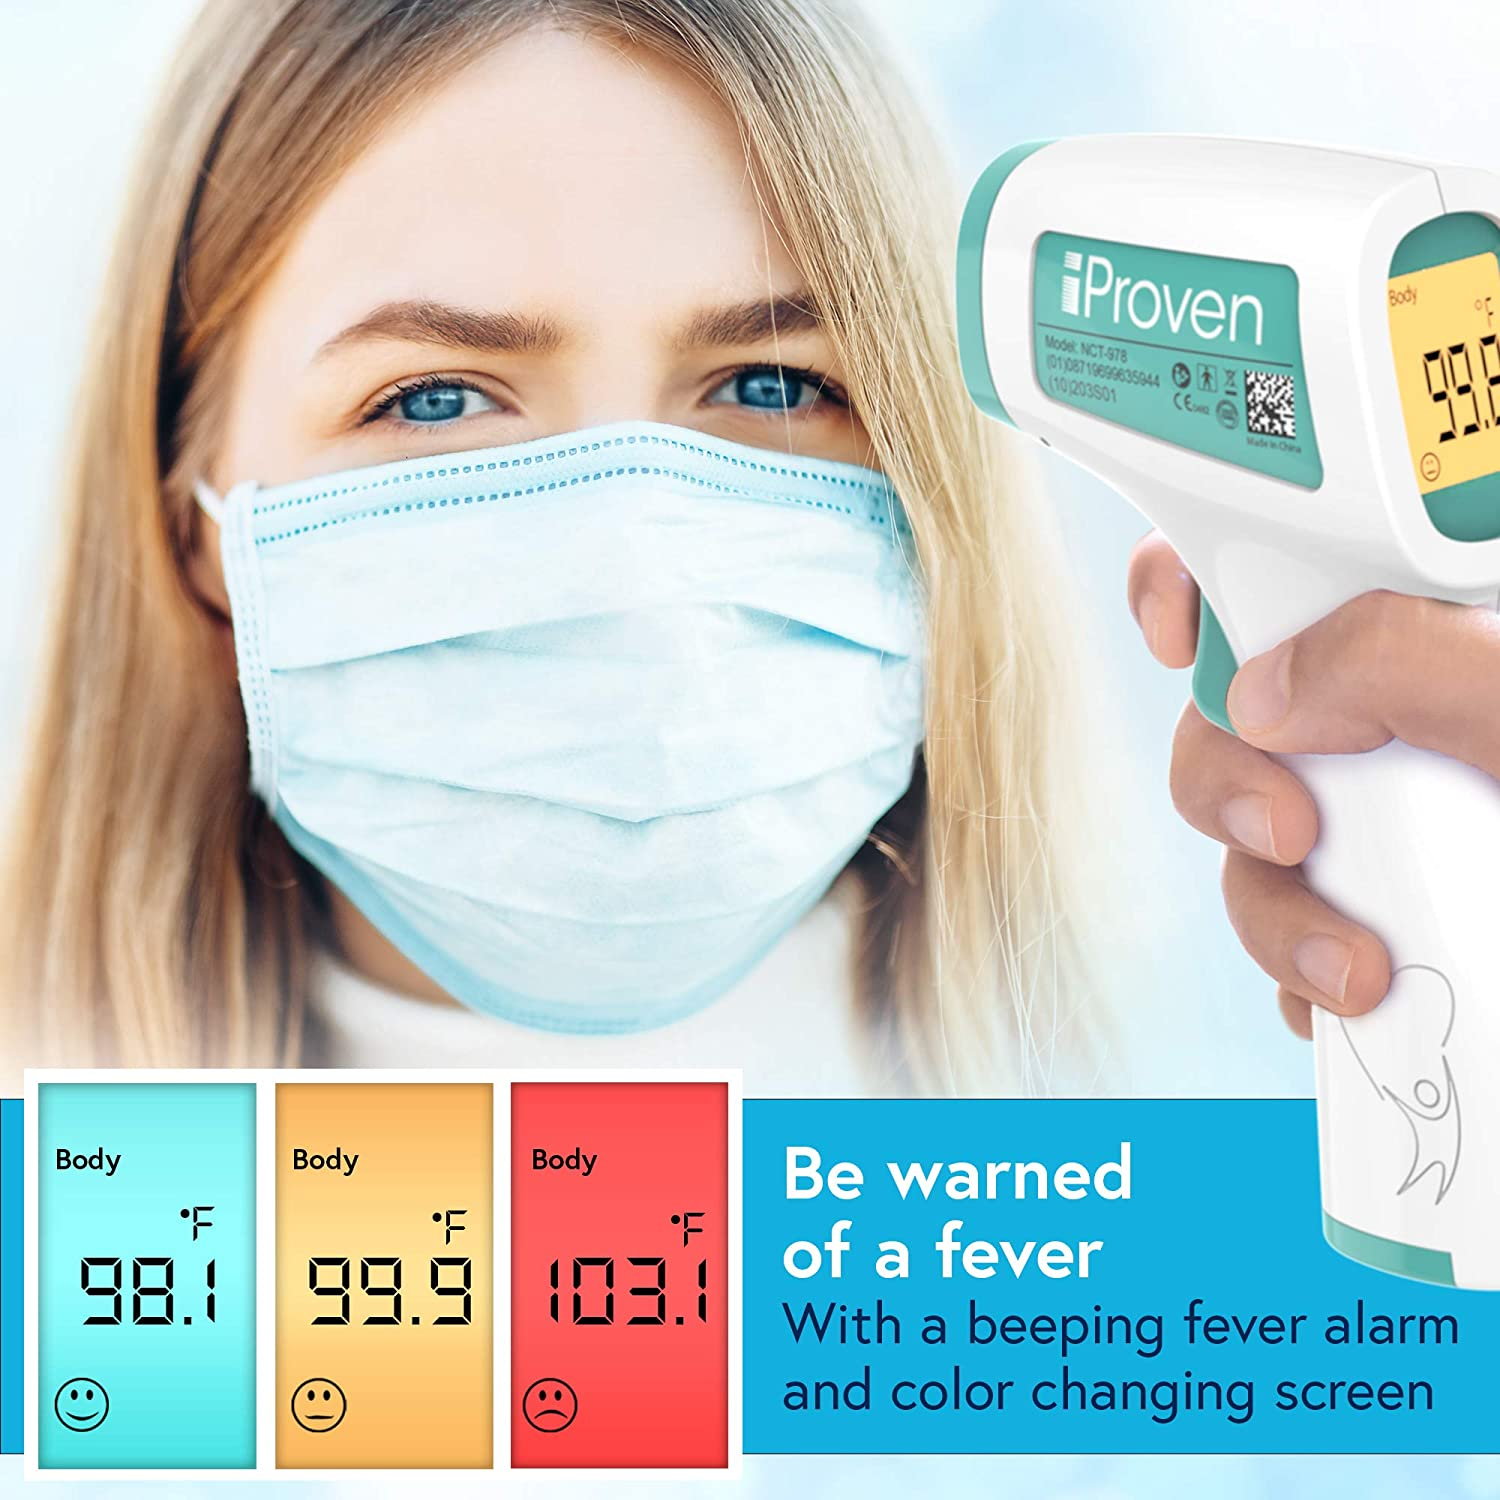 iProven No Touch Thermometer for Adults, Kids and Babies, Touchless Thermometer, 1s Instant Accurate Readings, Forehead Infrared Thermometer with Fever Alarm, Indoor, and Outdoor Use (Green): Industrial & Scientific